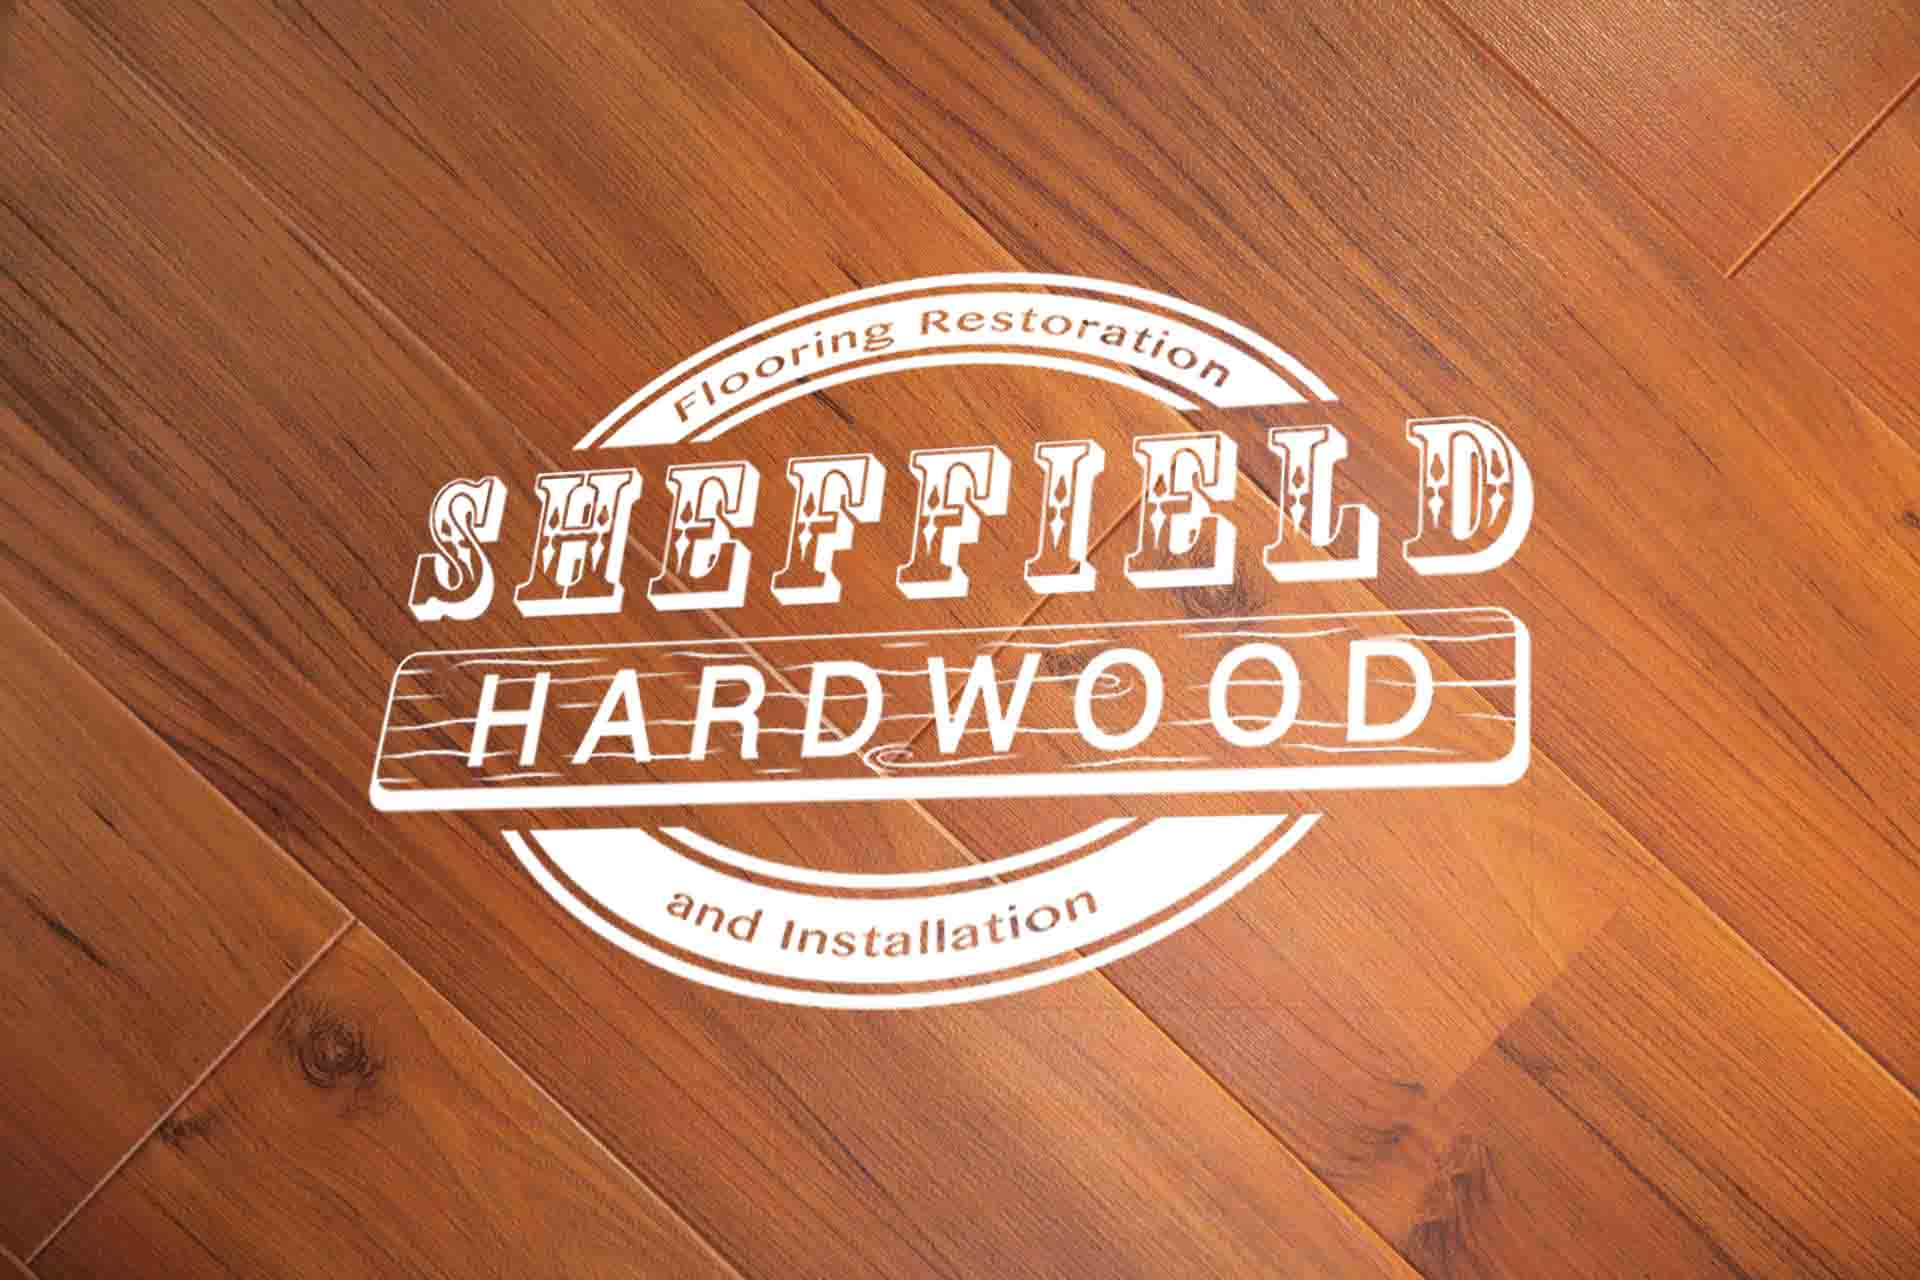 About Sheffield Hardwood